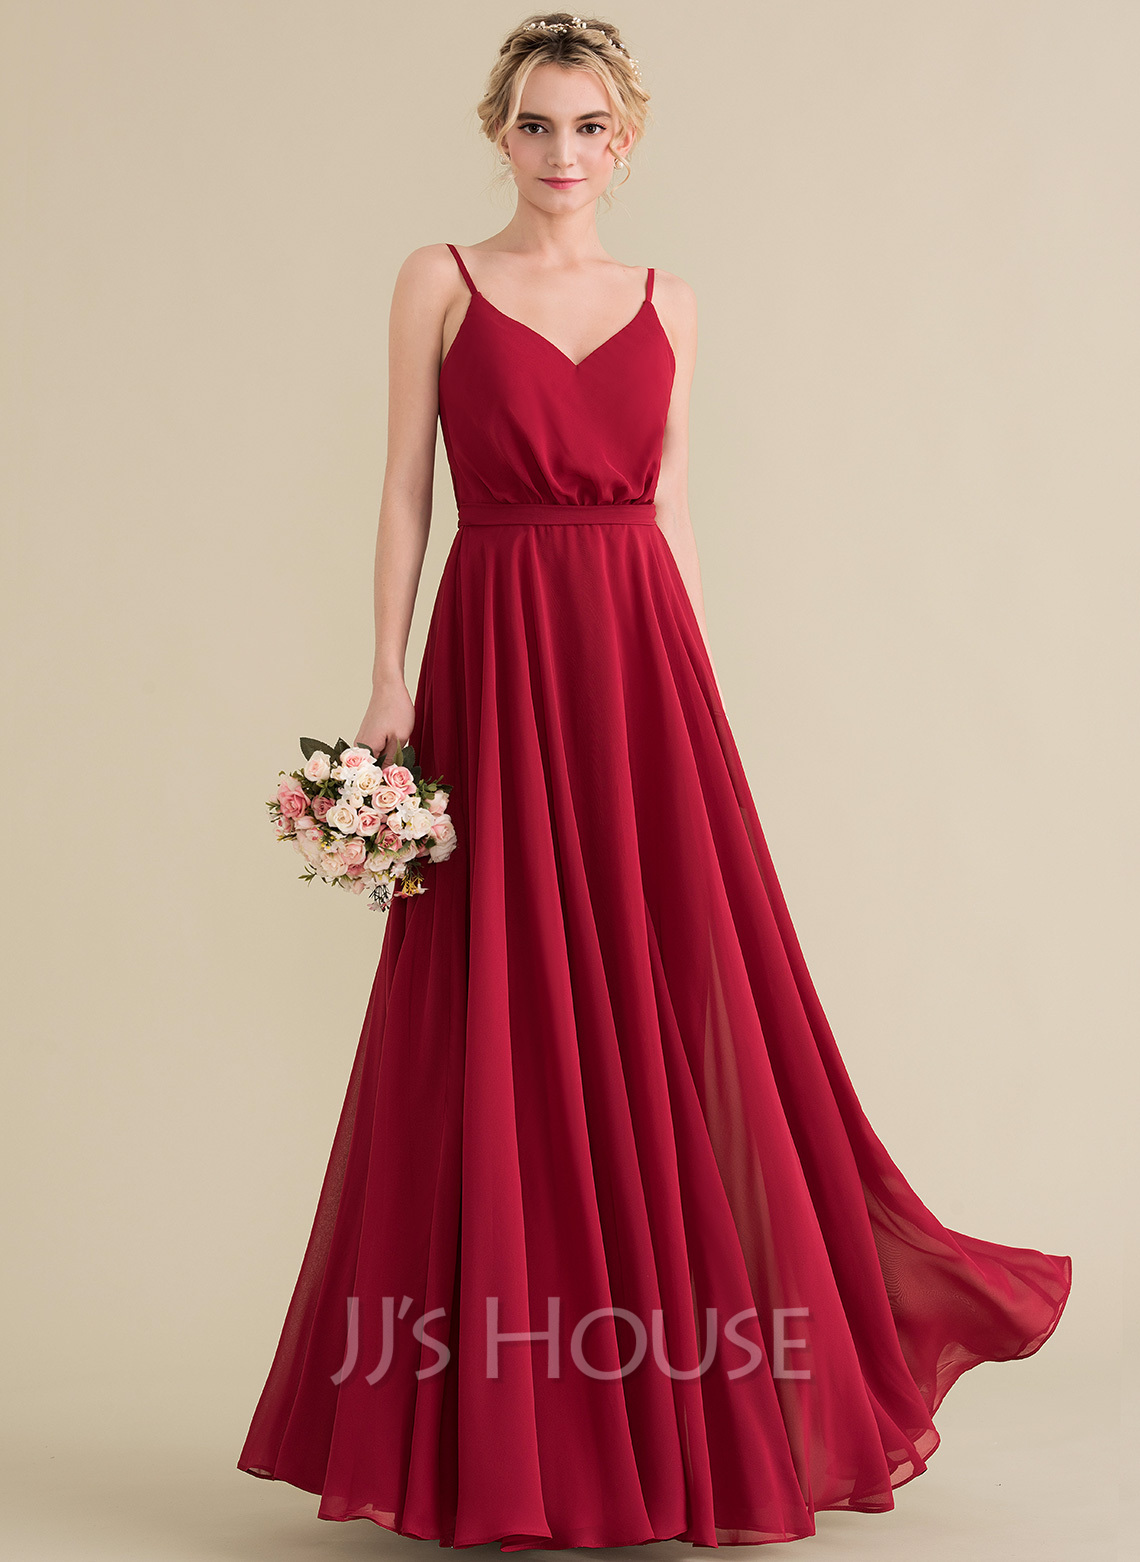 A Line Princess V Neck Floor Length Chiffon Bridesmaid Dress With Bow Loading Zoom